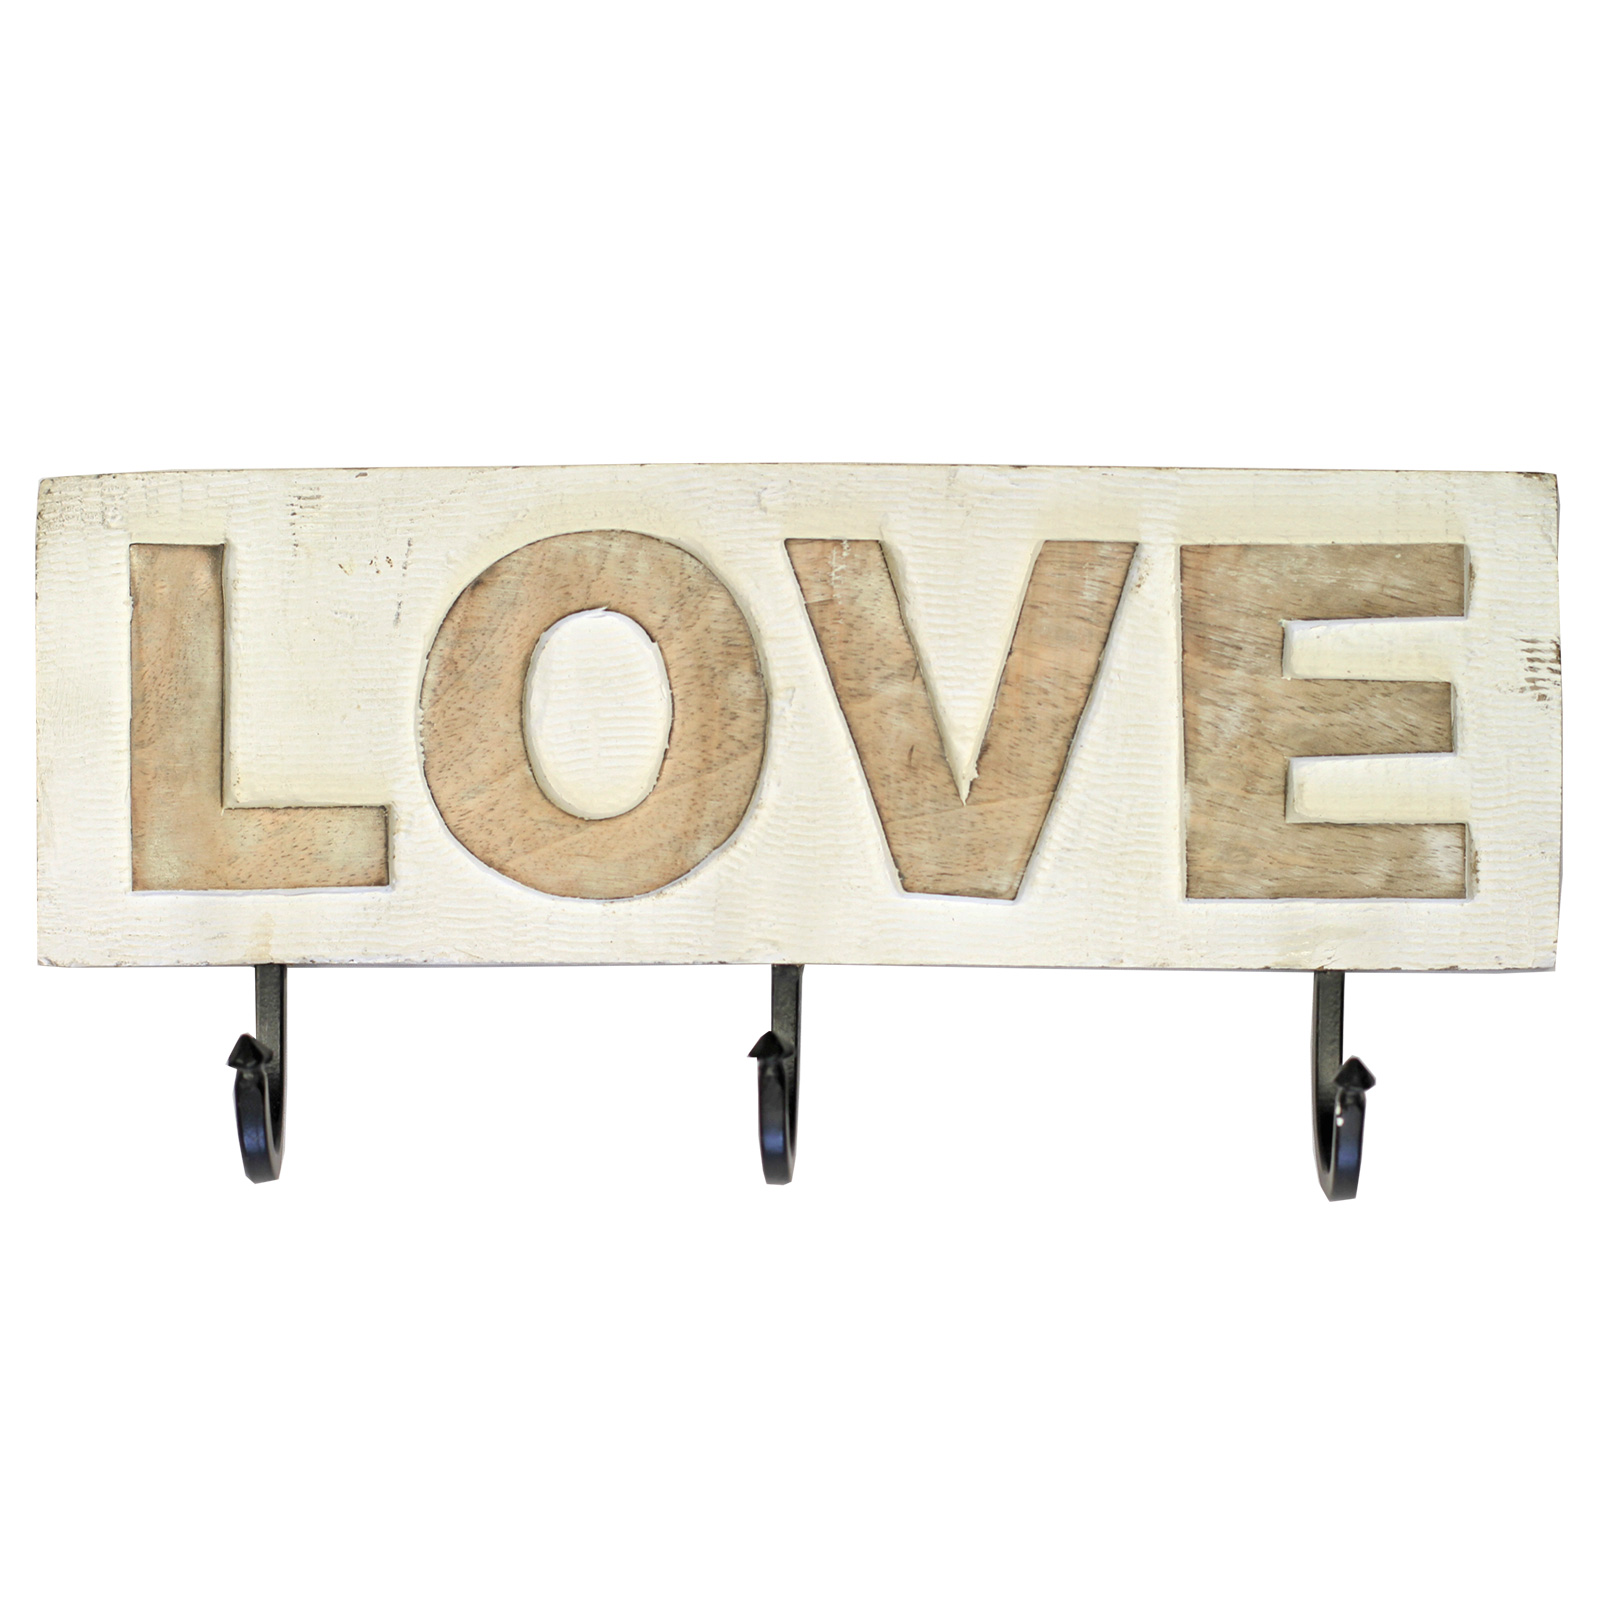 Shabby Chic Wooden Wall Mounted Coat Key Rack With 3